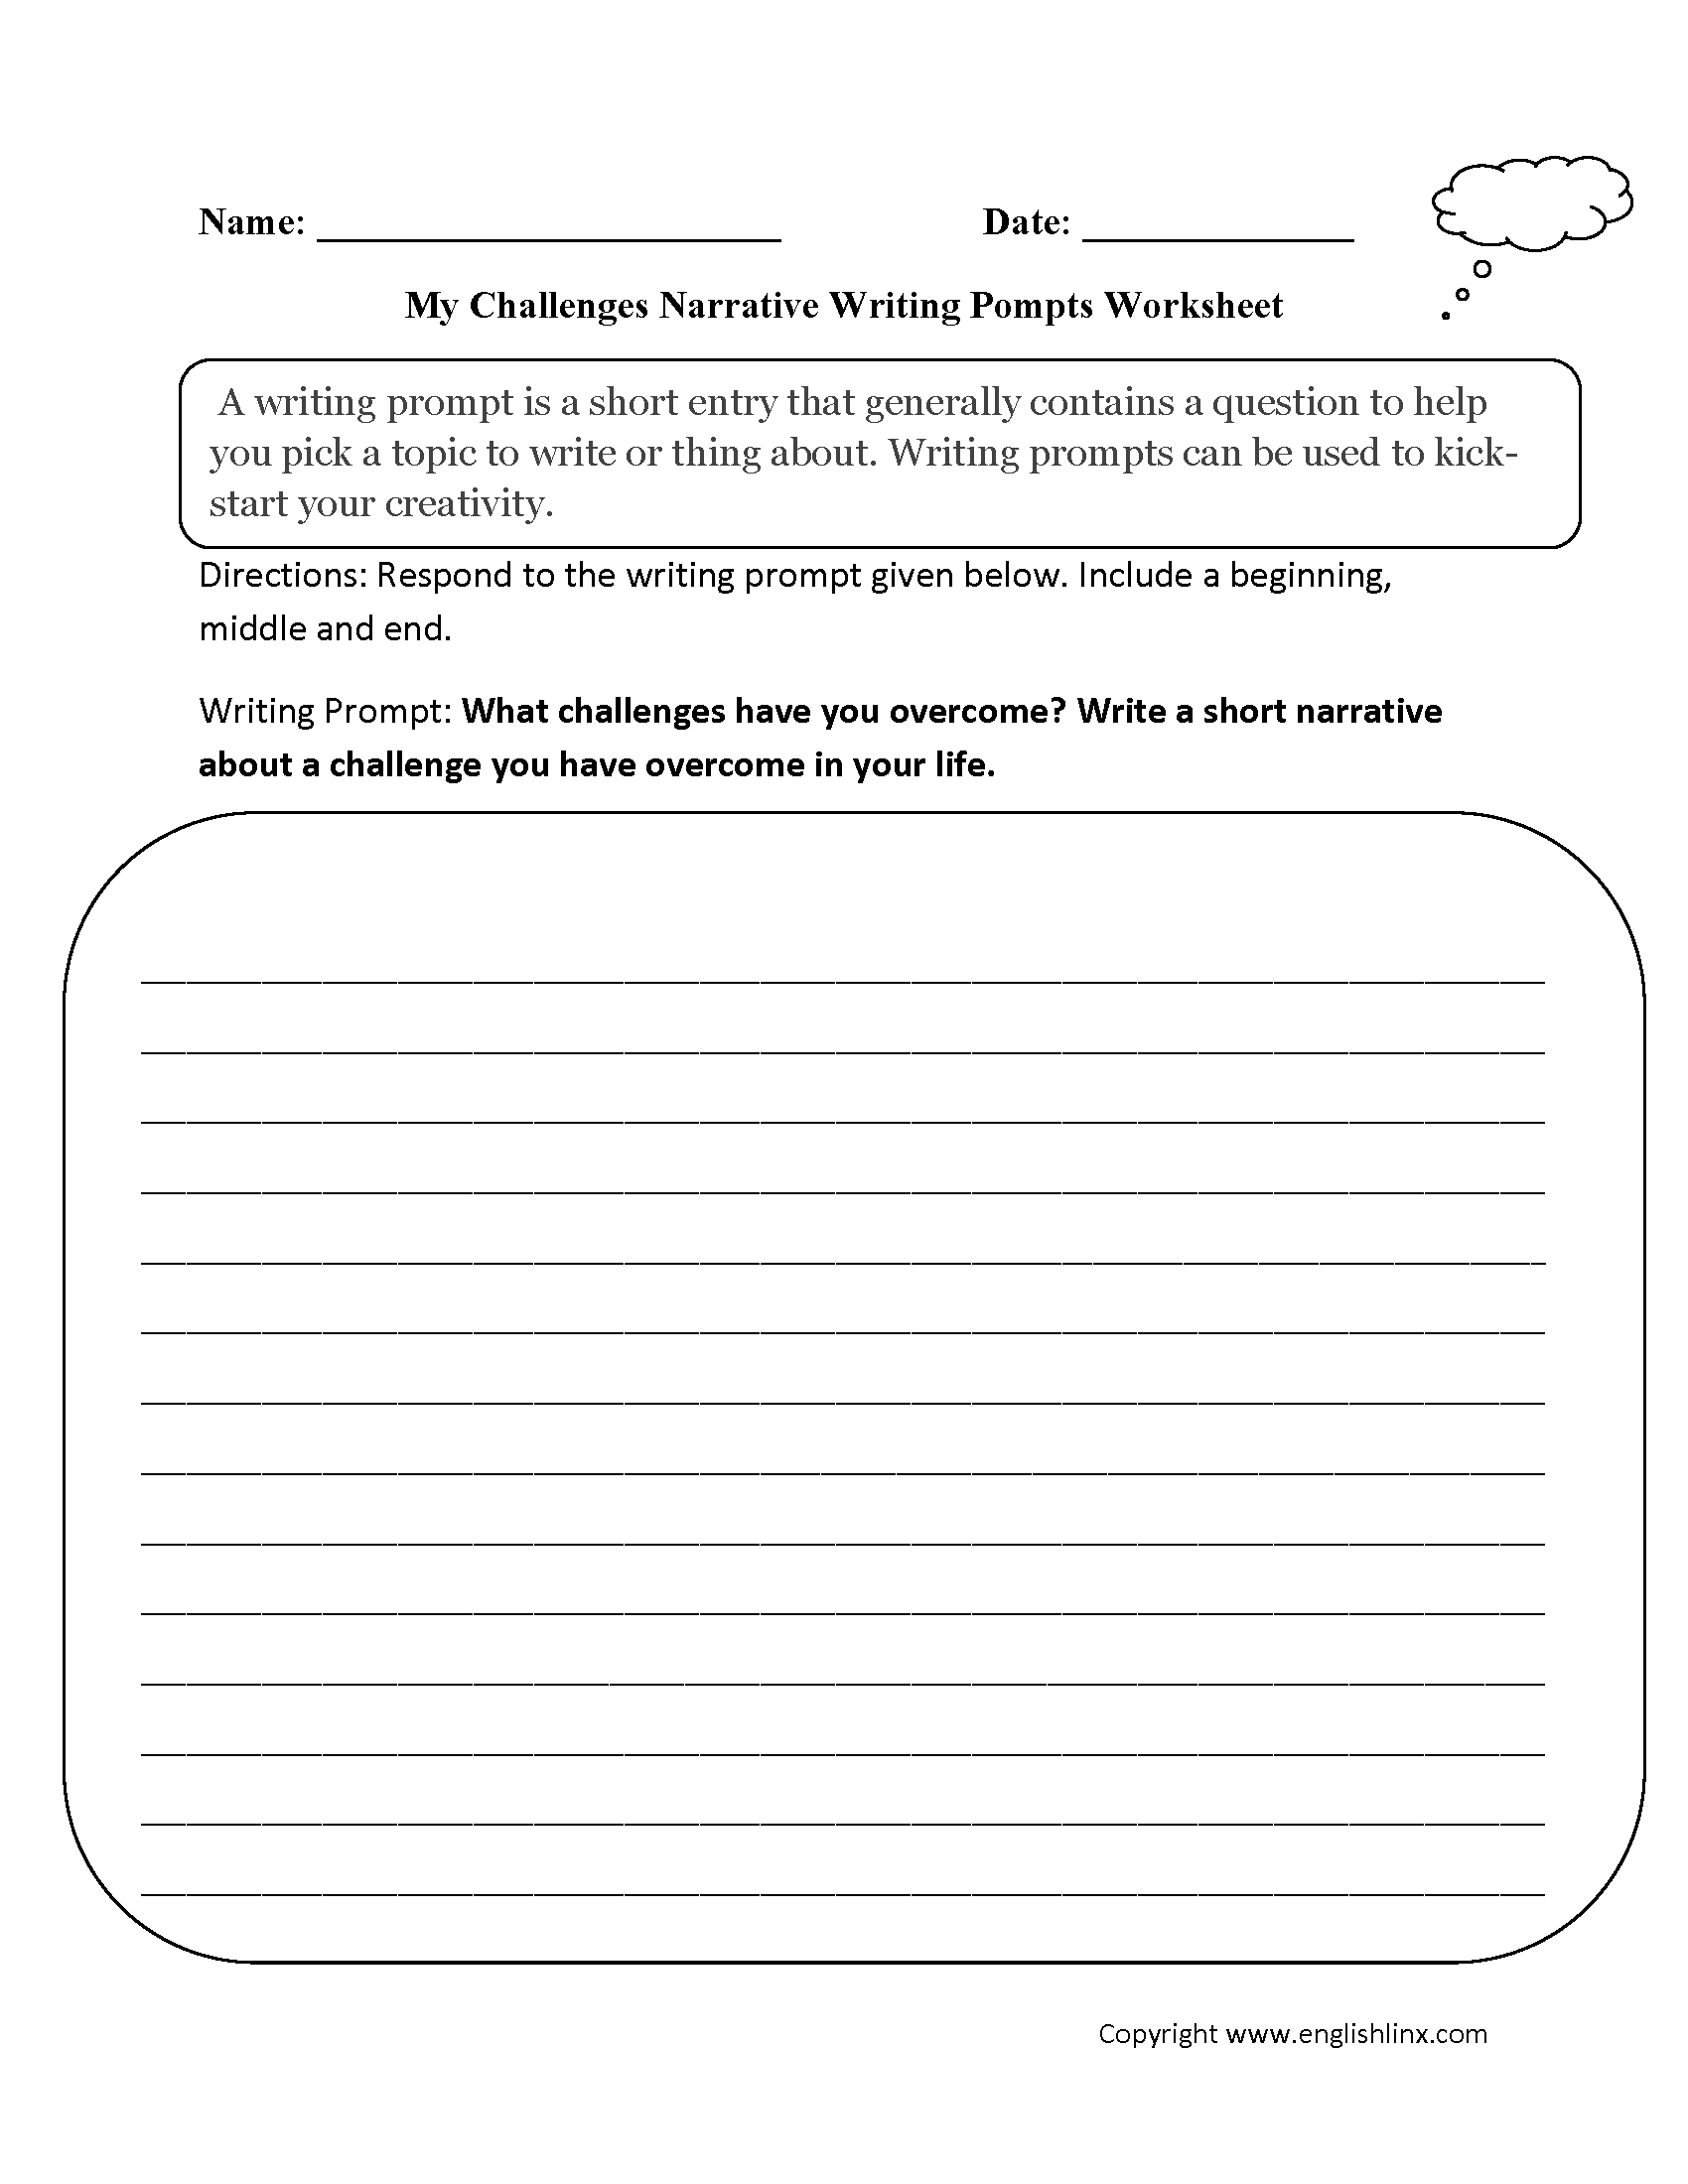 writing prompts worksheets narrative writing prompts worksheets narrative writing prompts worksheets